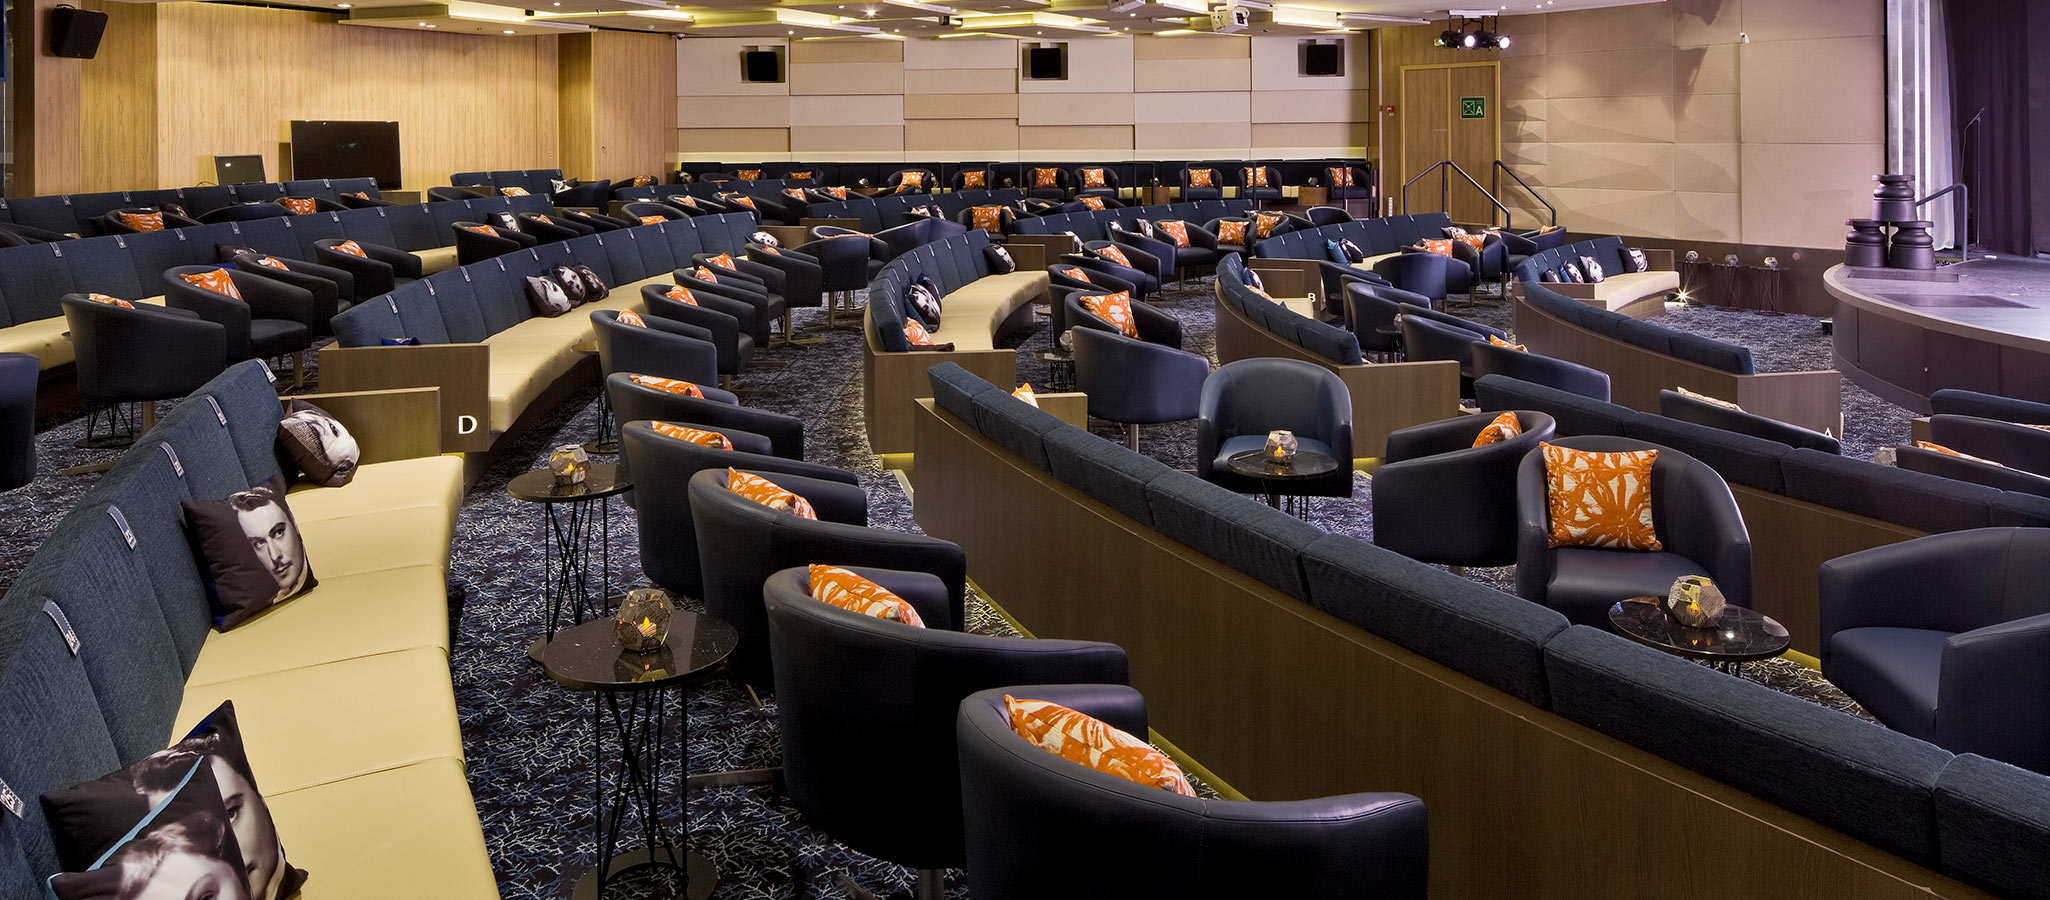 When chartering a conference ship, you will have ultra-modern room facilities and technical equipment at your disposal.